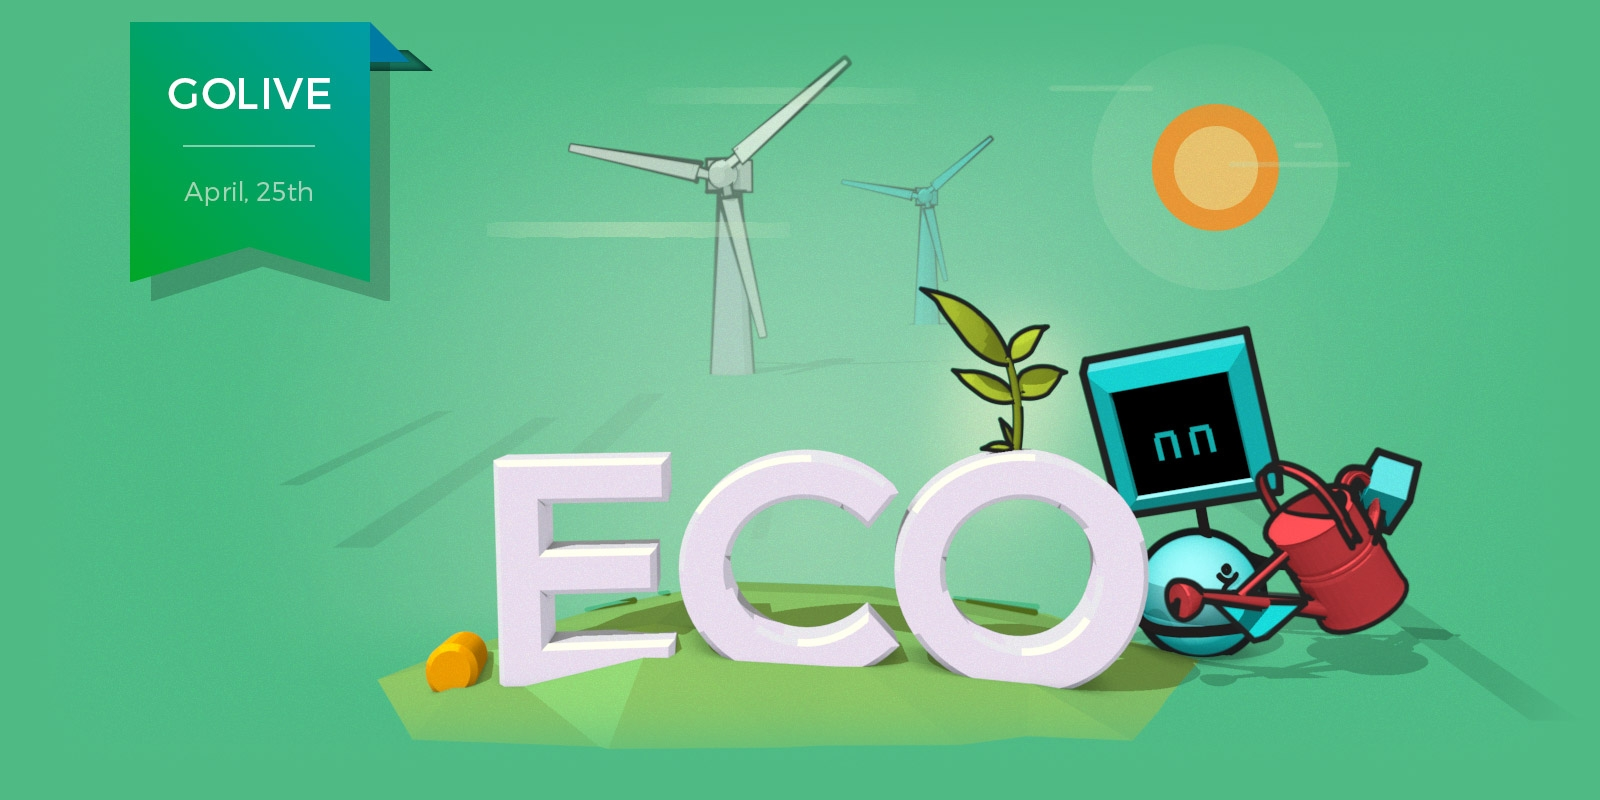 Now in GoLive: .eco